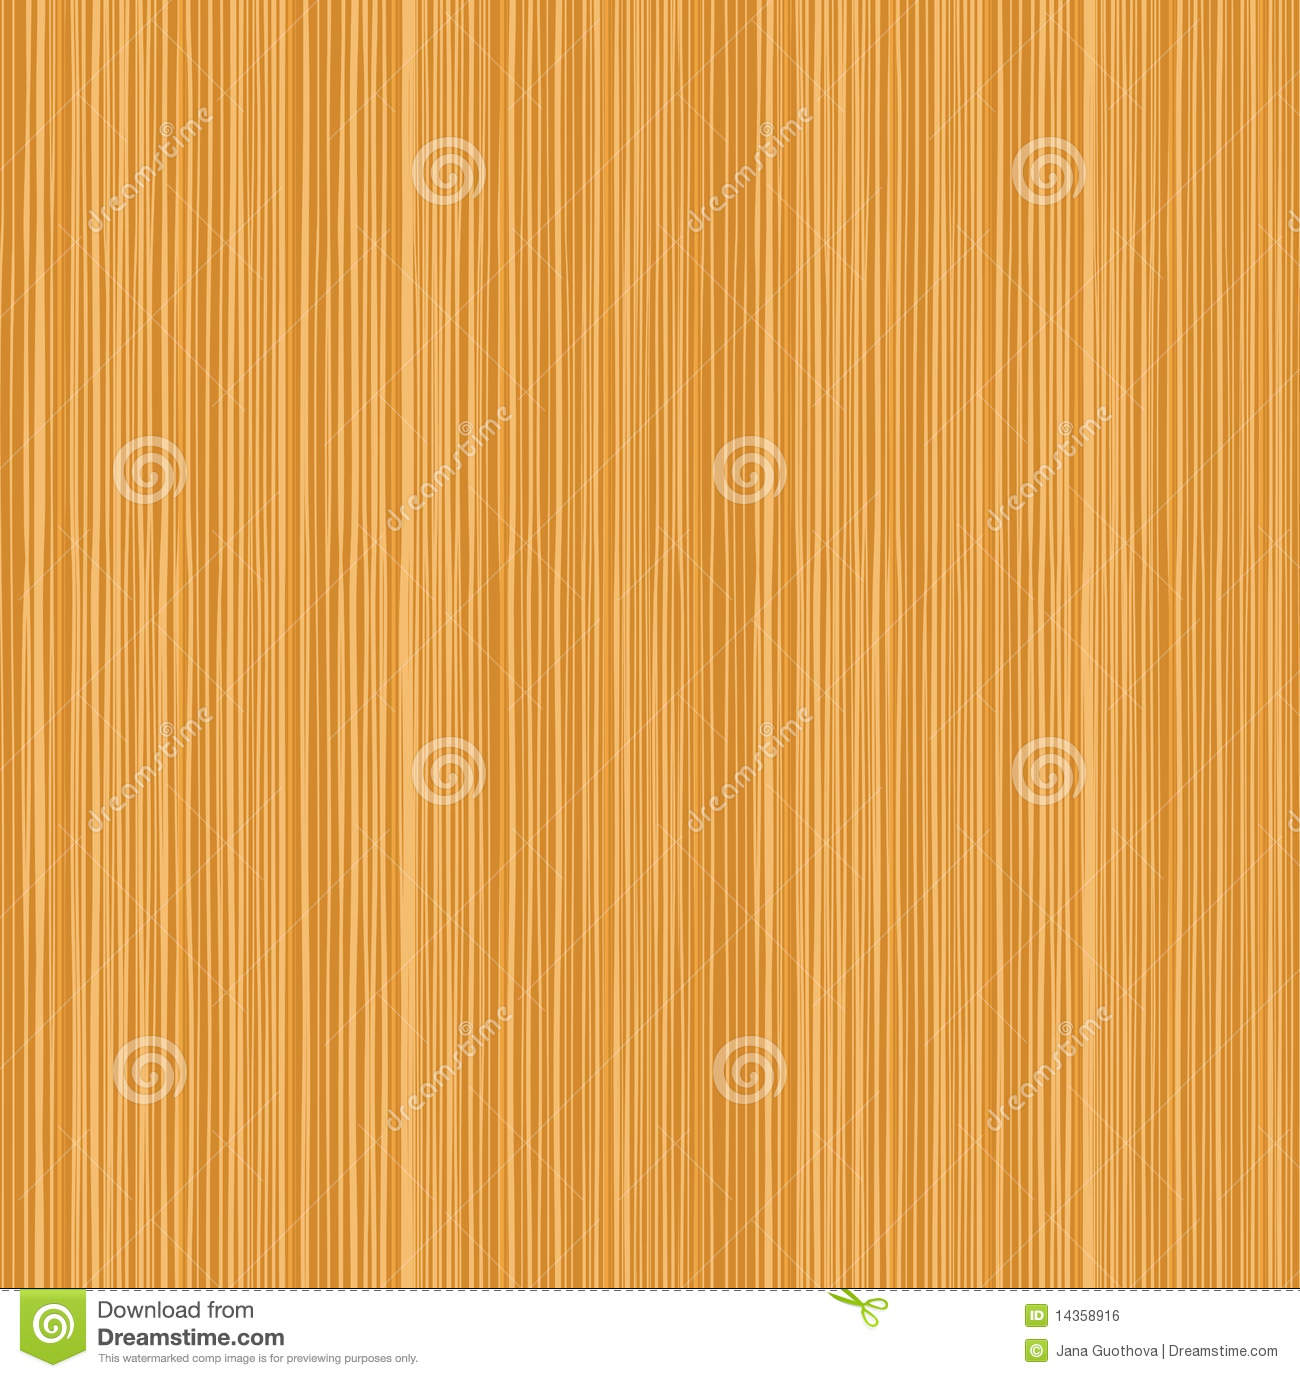 Light Wood Pattern Light wood background pattern: galleryhip.com/light-wood-pattern.html